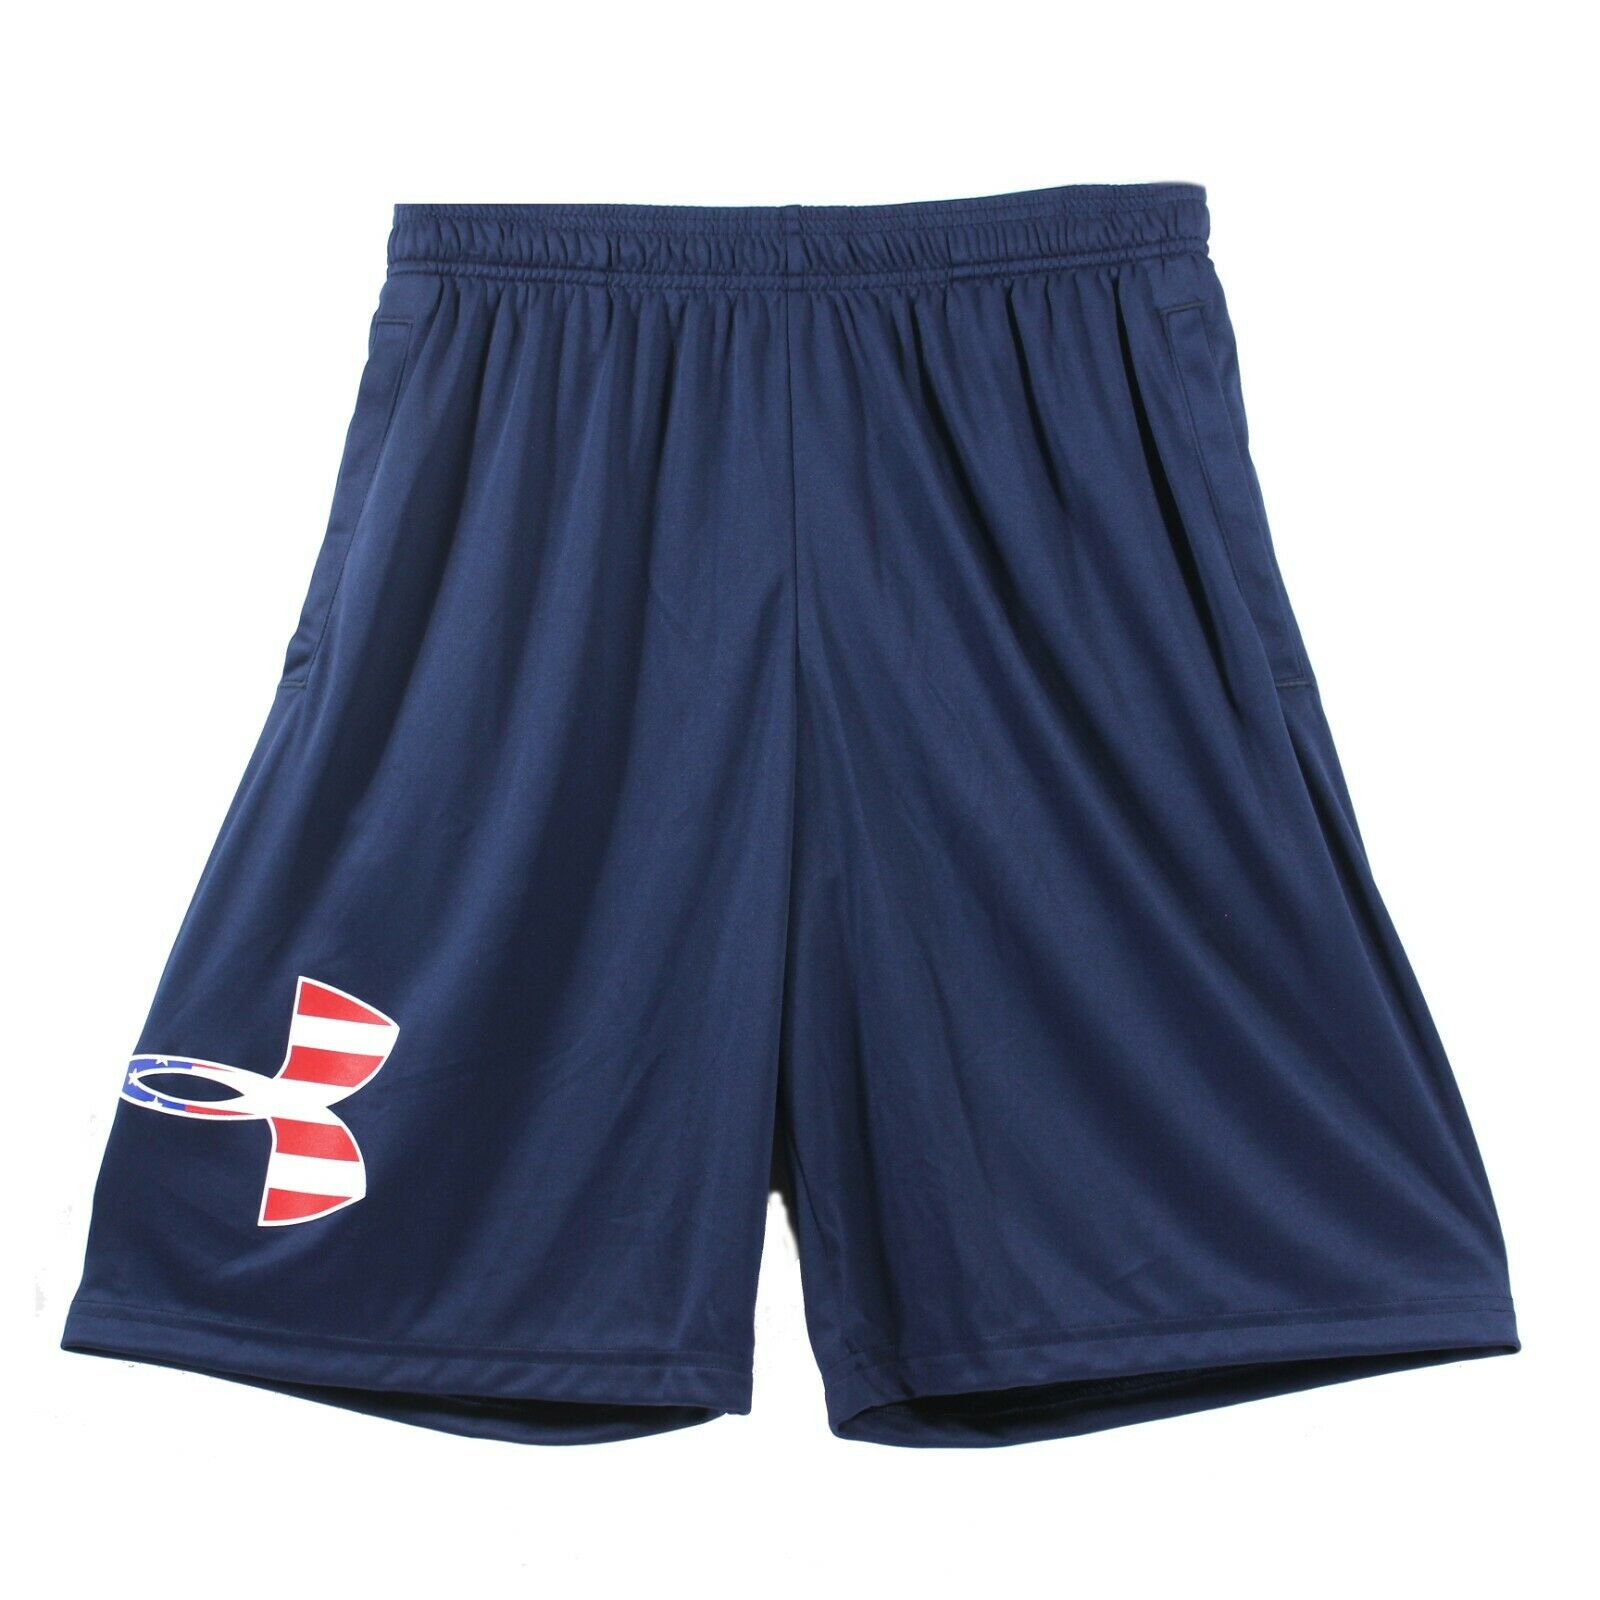 CAPITAL SPORTS Beforce Kompressions Hose Funktion Women SizeM under armour Neu